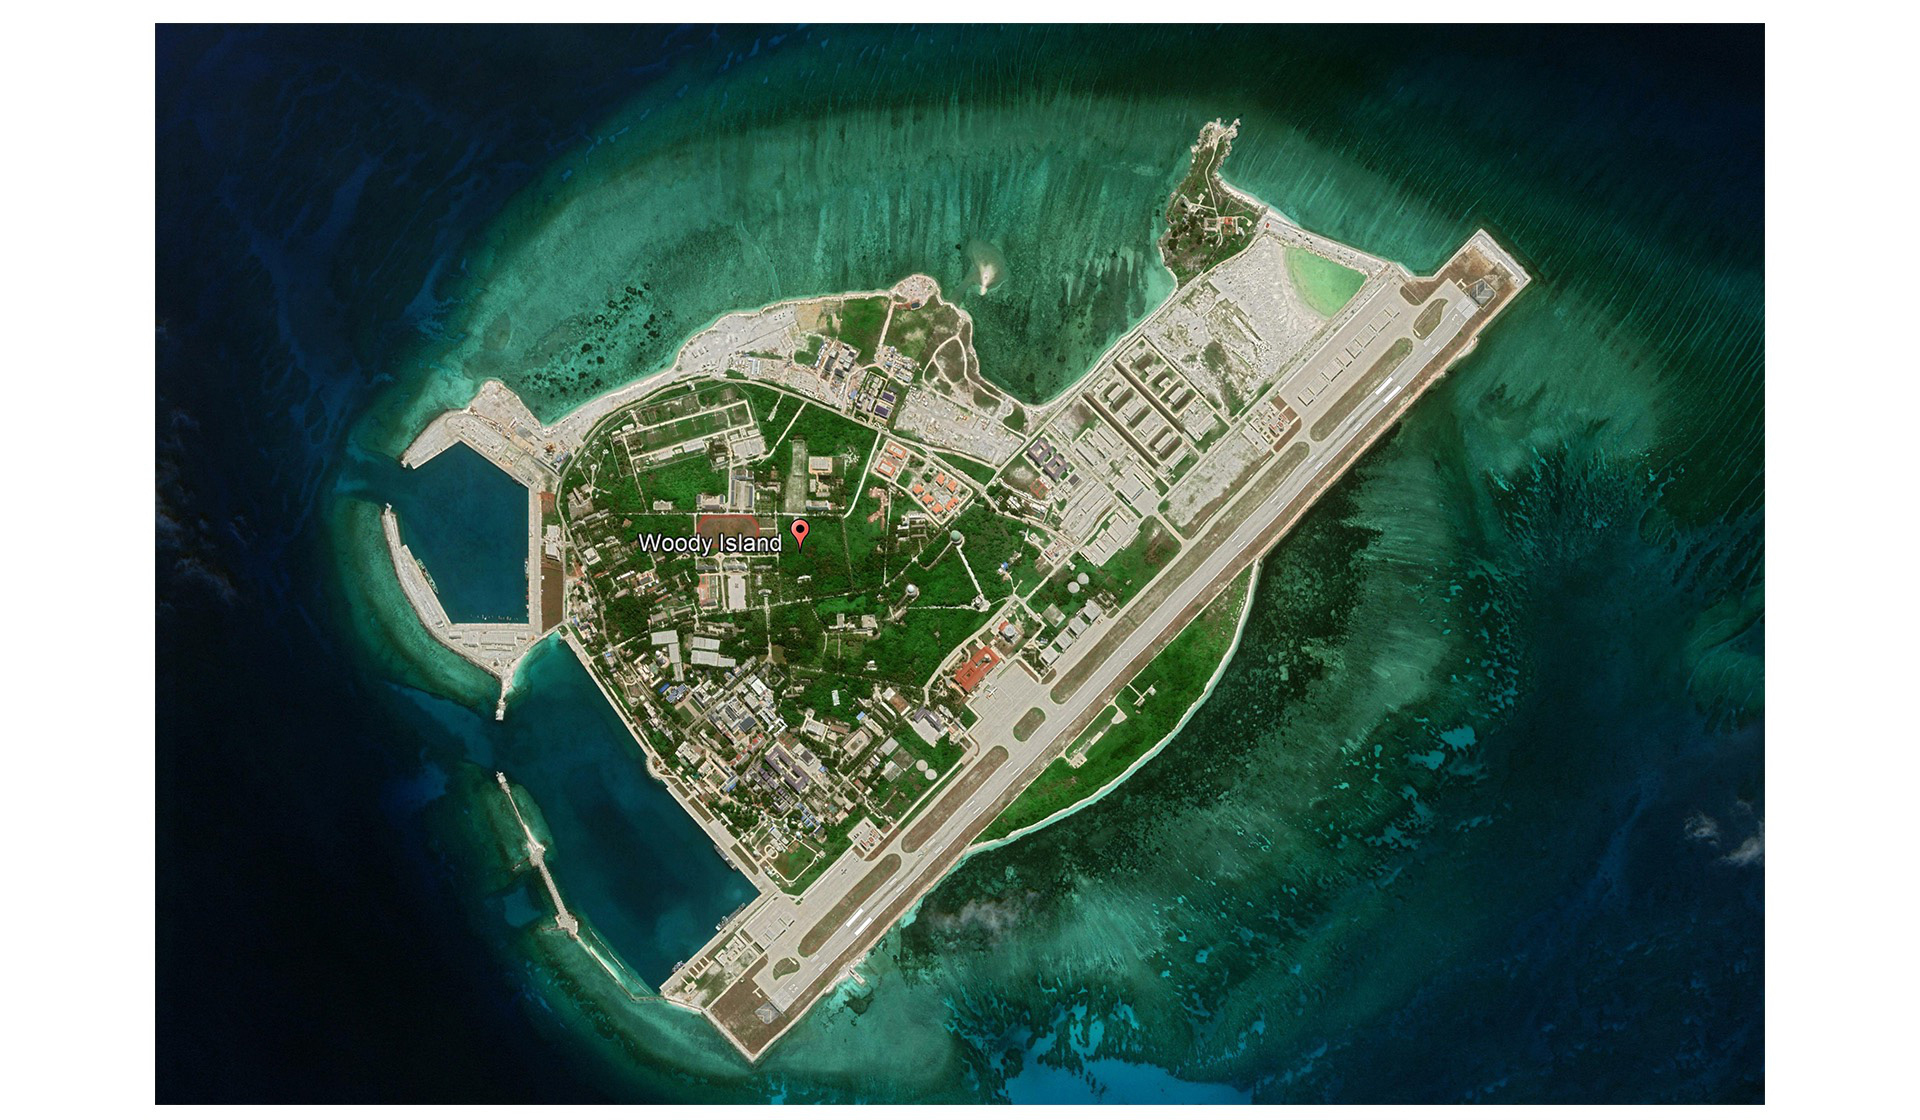 China's illegal land reclamation on the Phu Lam (Woody) Island in Vietnam's Hoang Sa (Paracel) archipelago is evident in this satellite image taken in March 2019. Photo: Google Earth